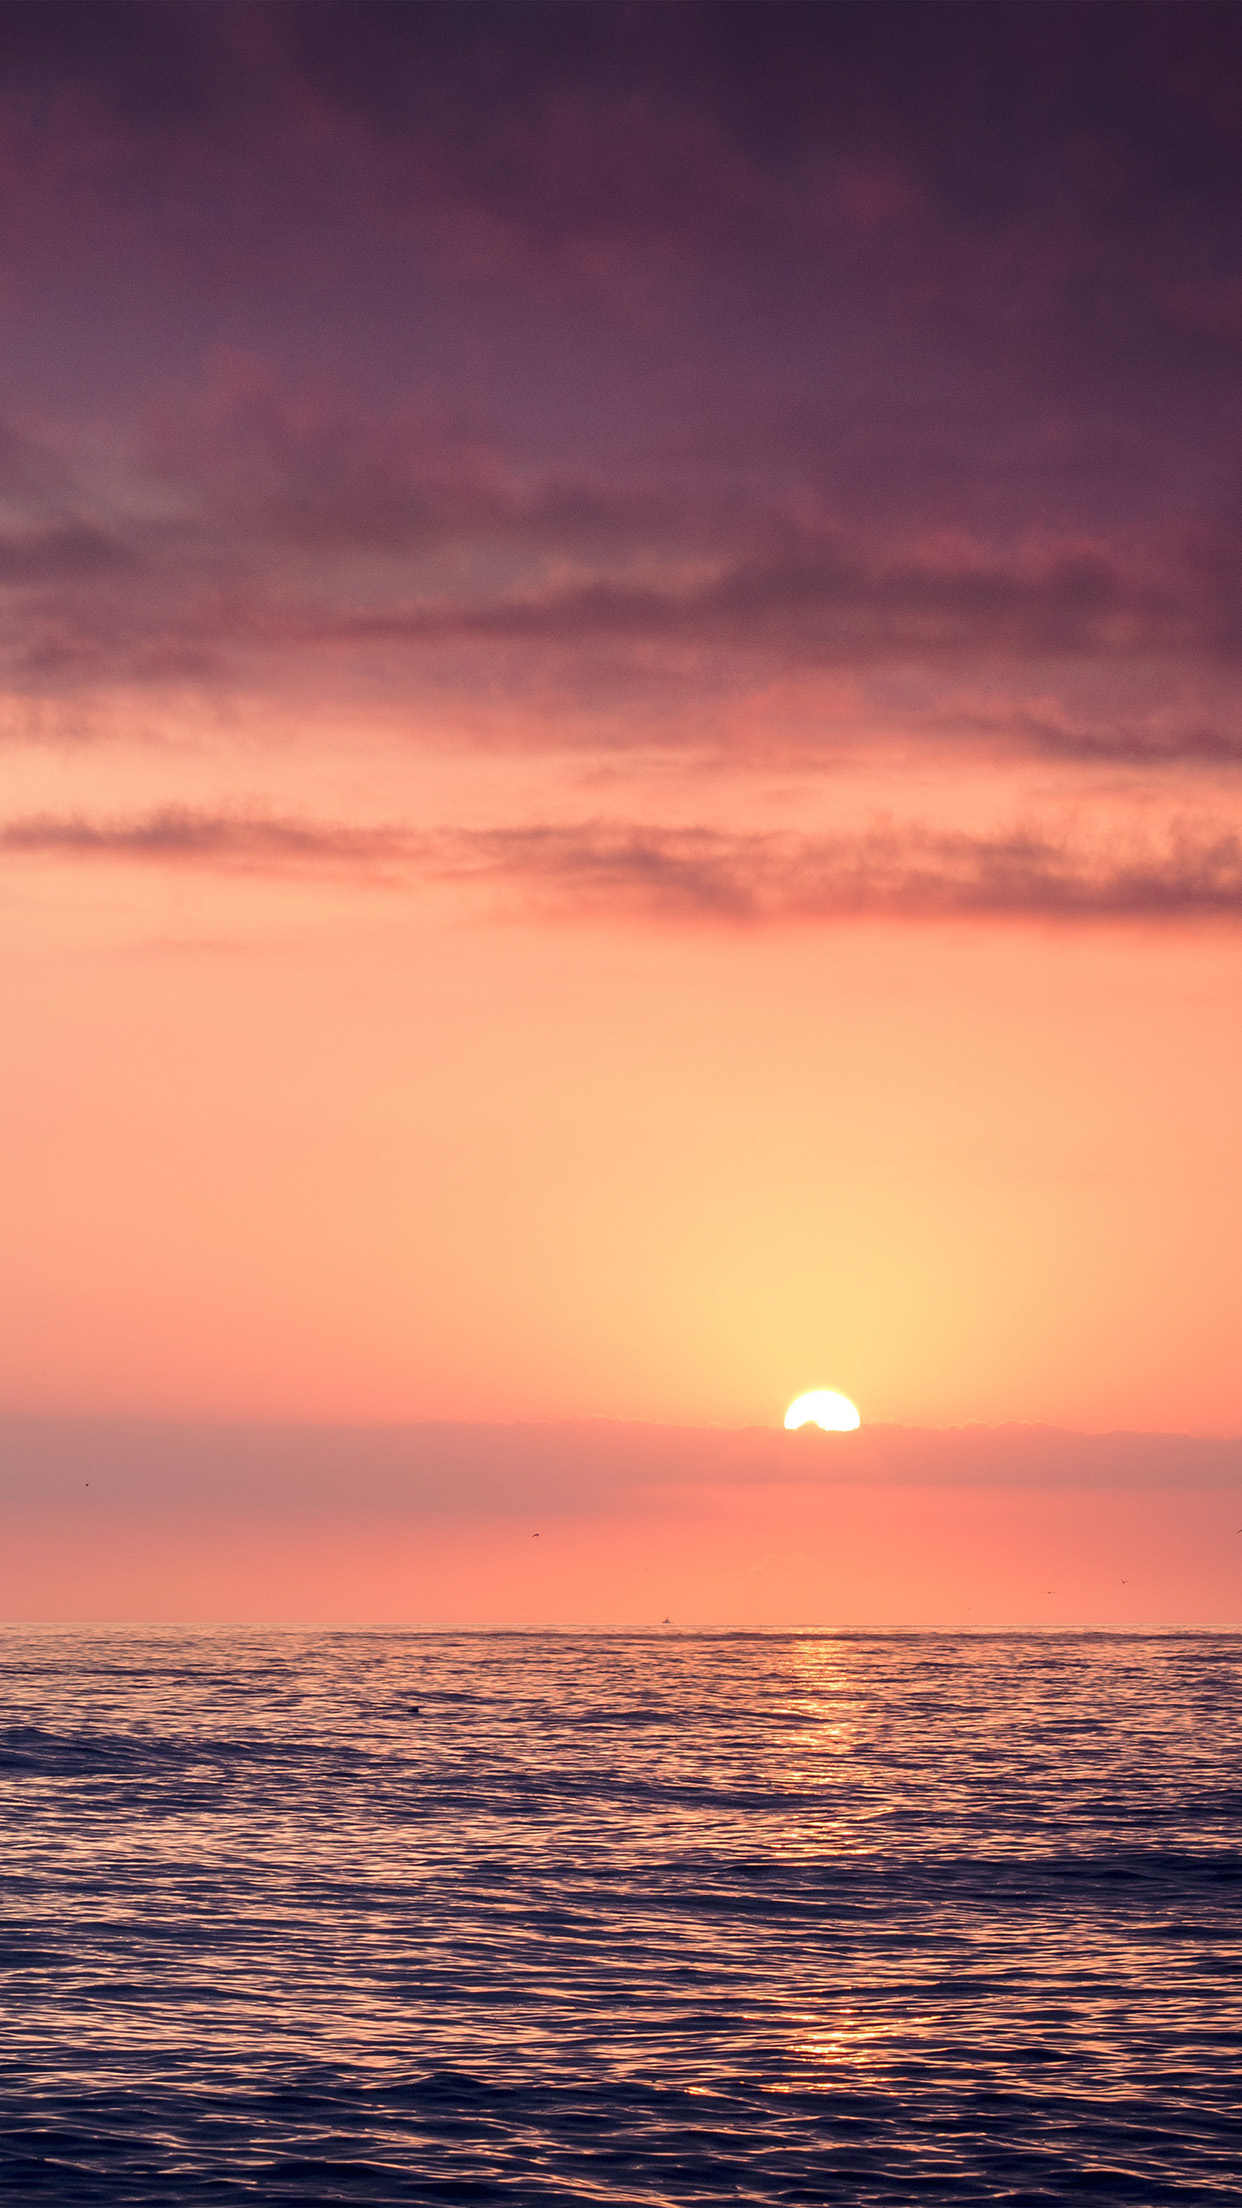 Iphone6papers Com Iphone 6 Wallpaper Mx95 Sunset Sea Beach Sky